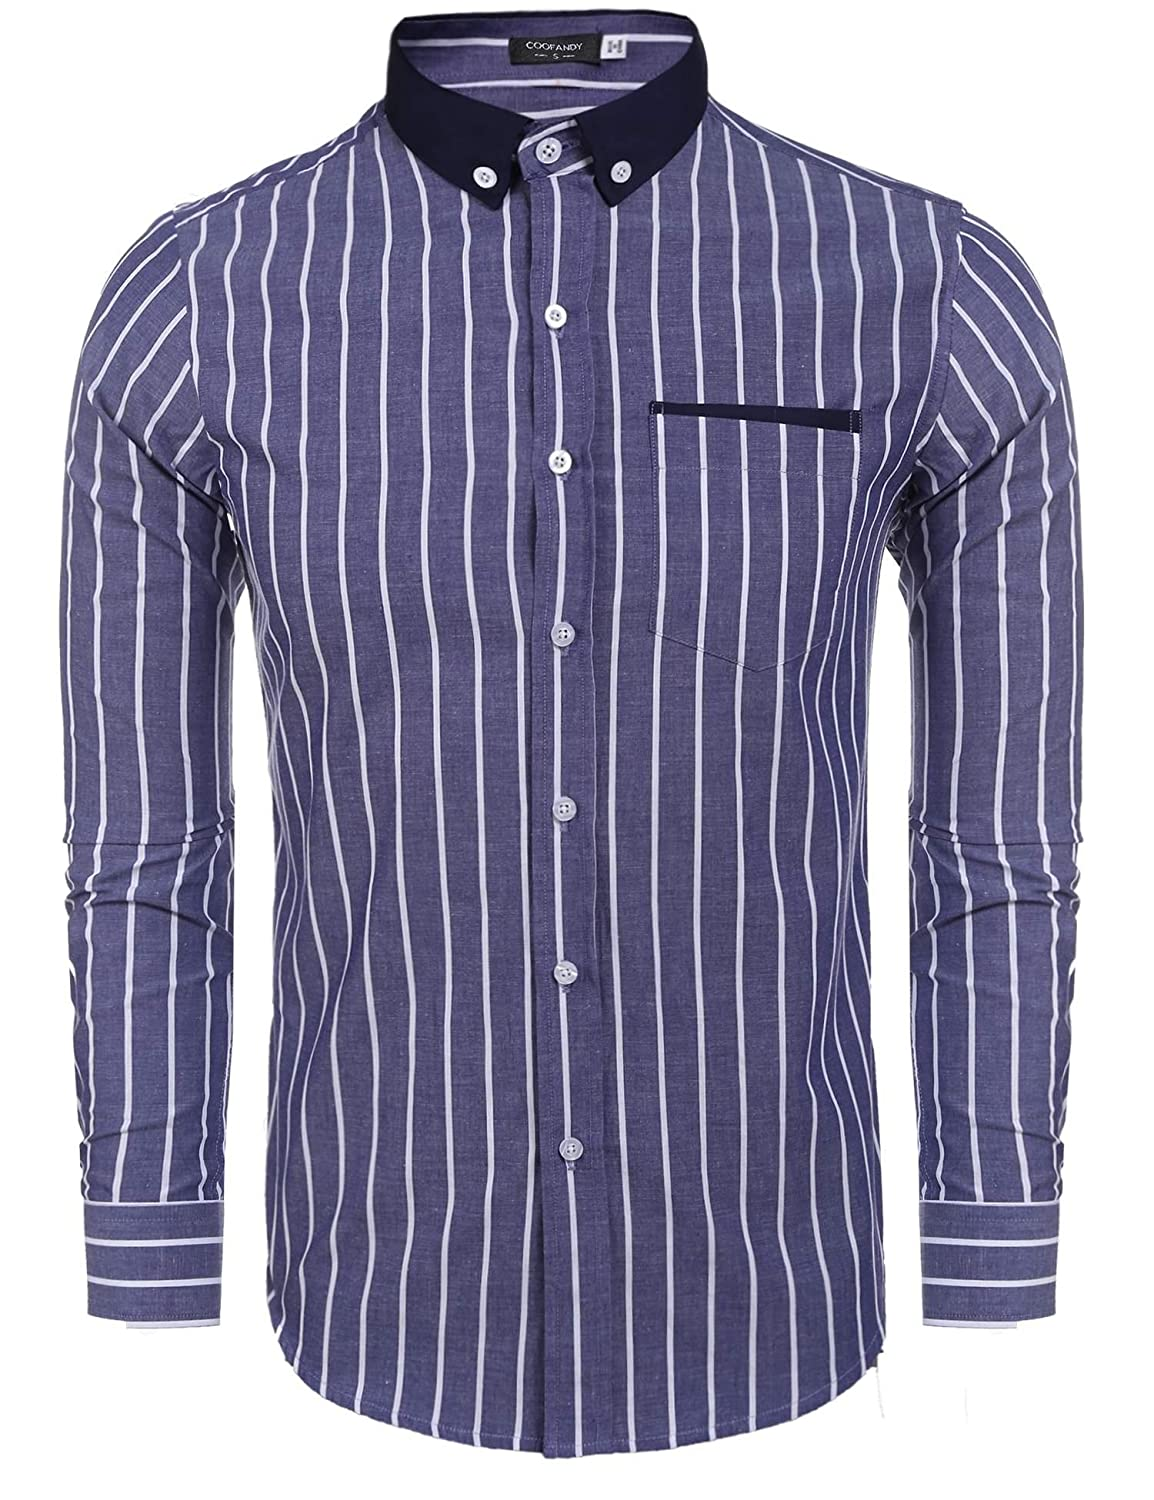 Coofandy Mens Pinpoint Slim Fit Striped Contrast Color Button Down